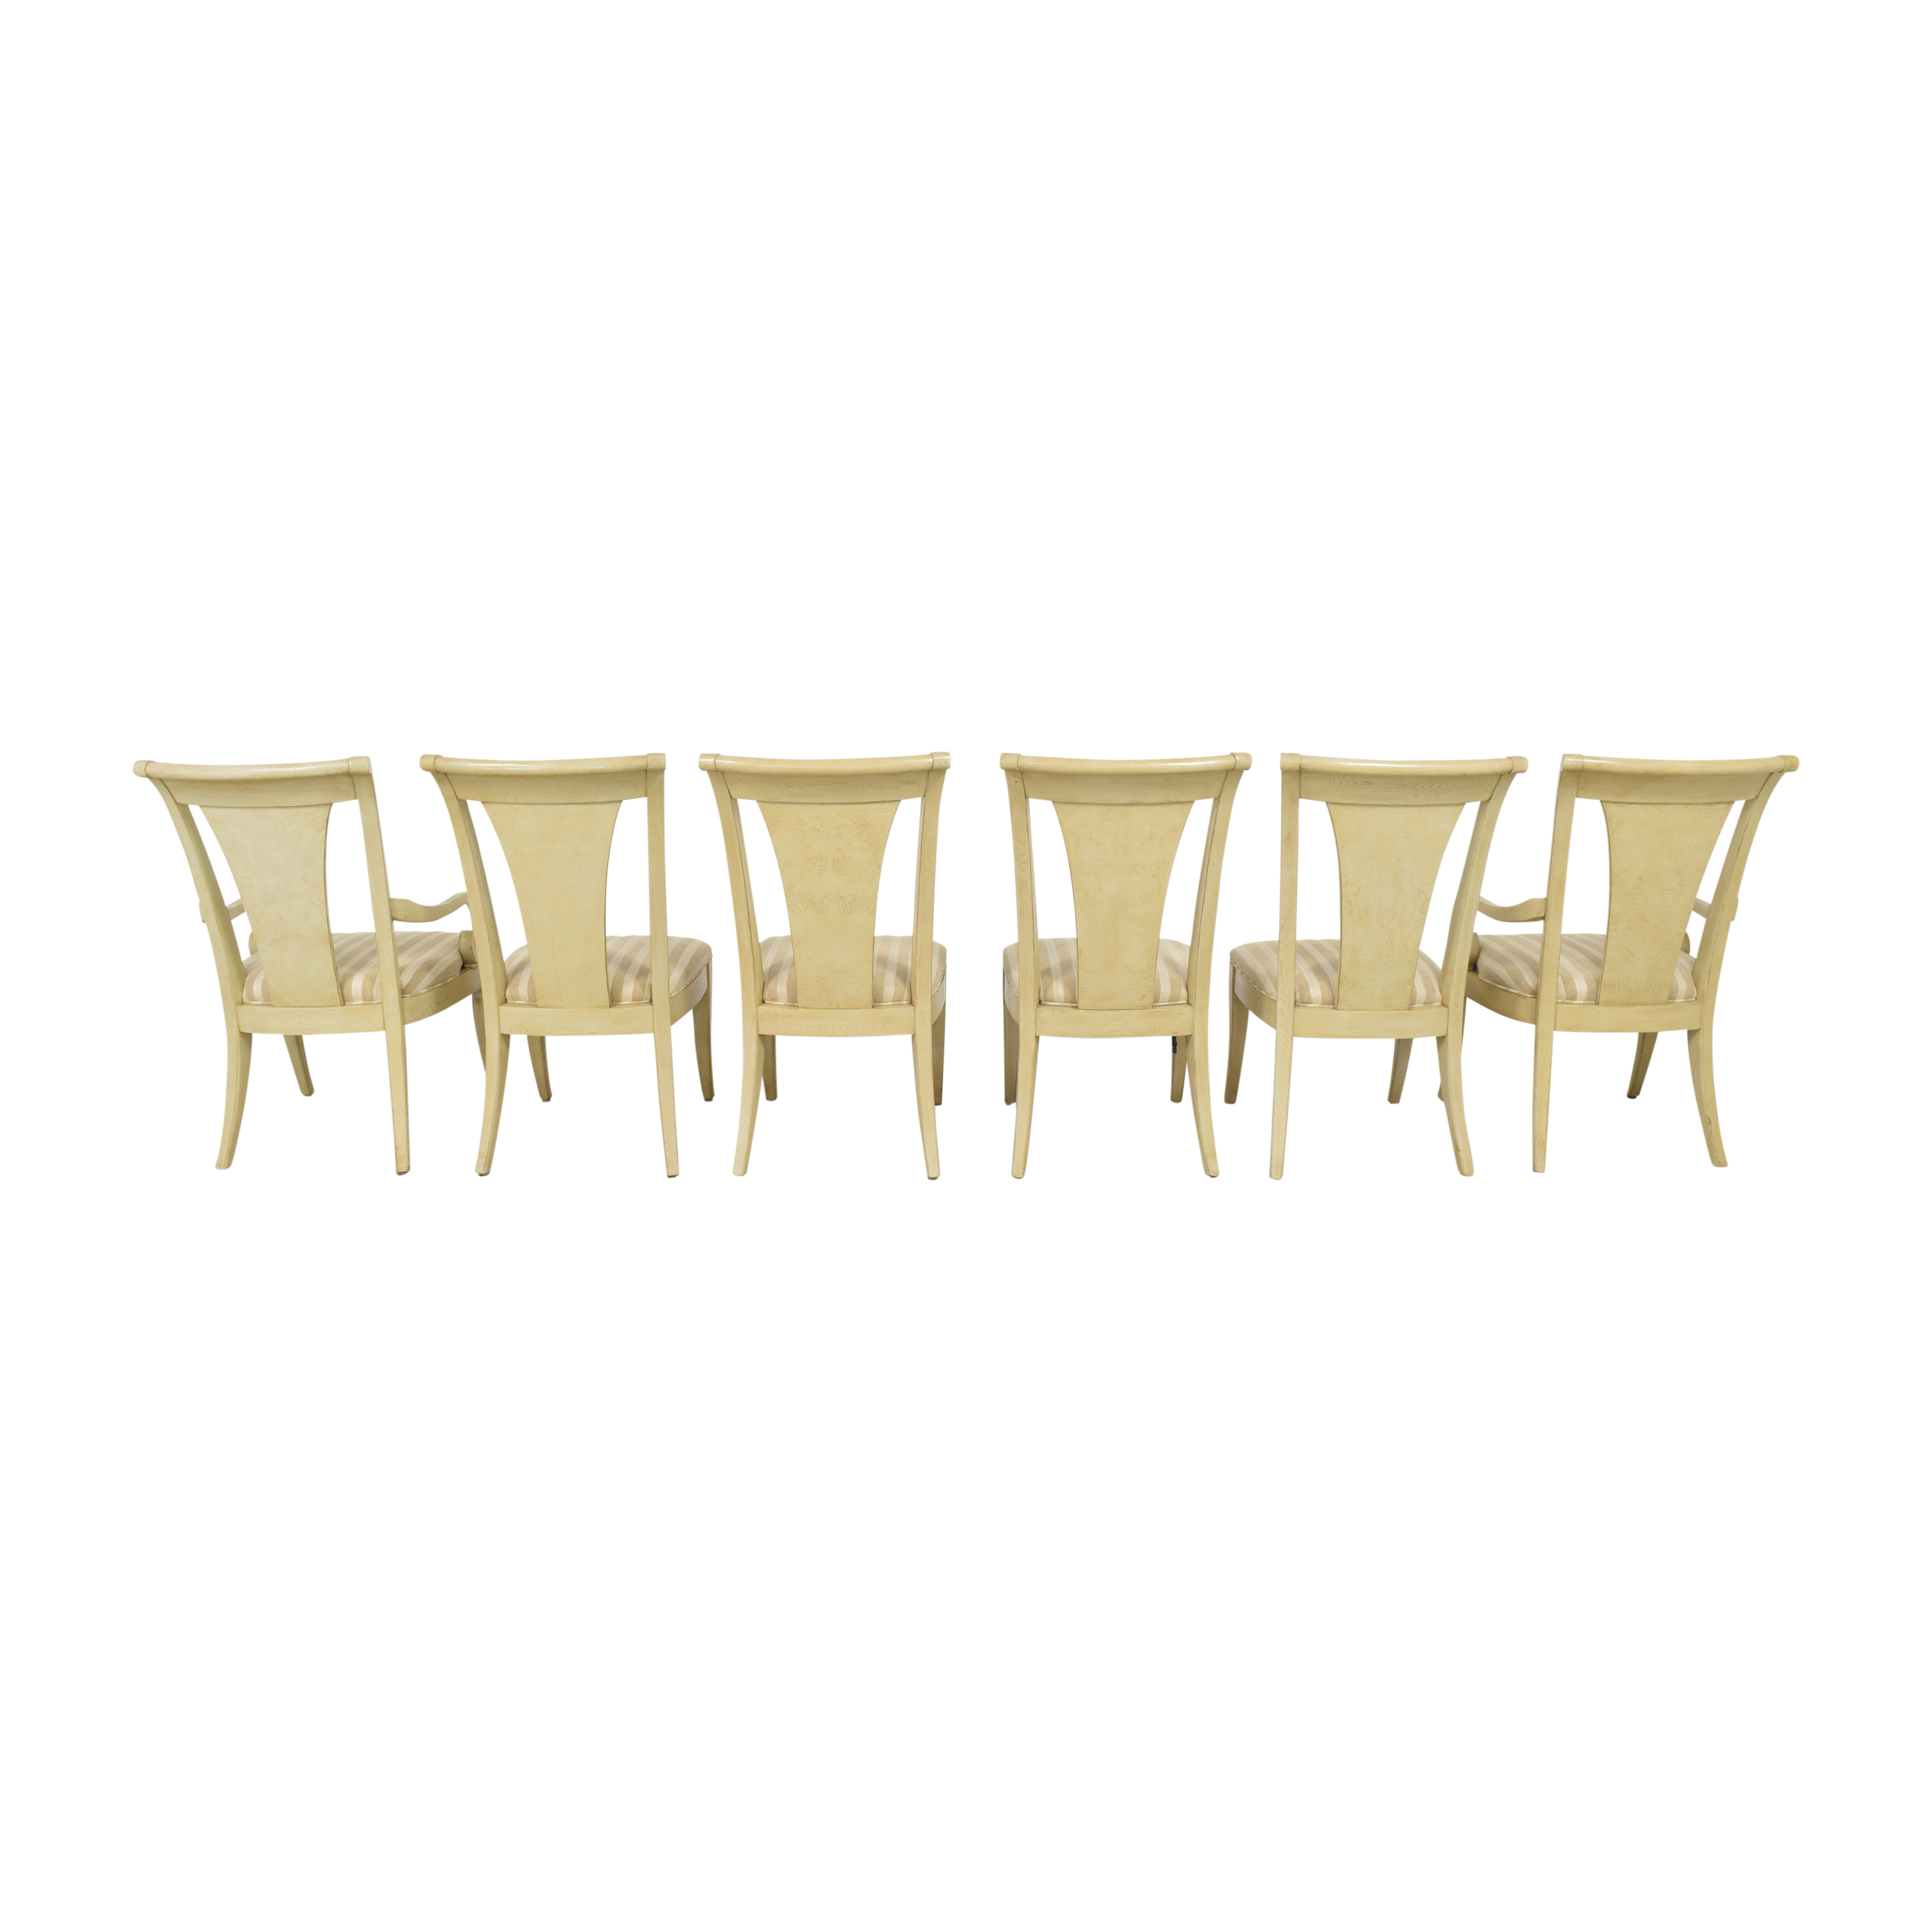 buy Drexel Heritage Insignia Dining Chairs Drexel Heritage Dining Chairs